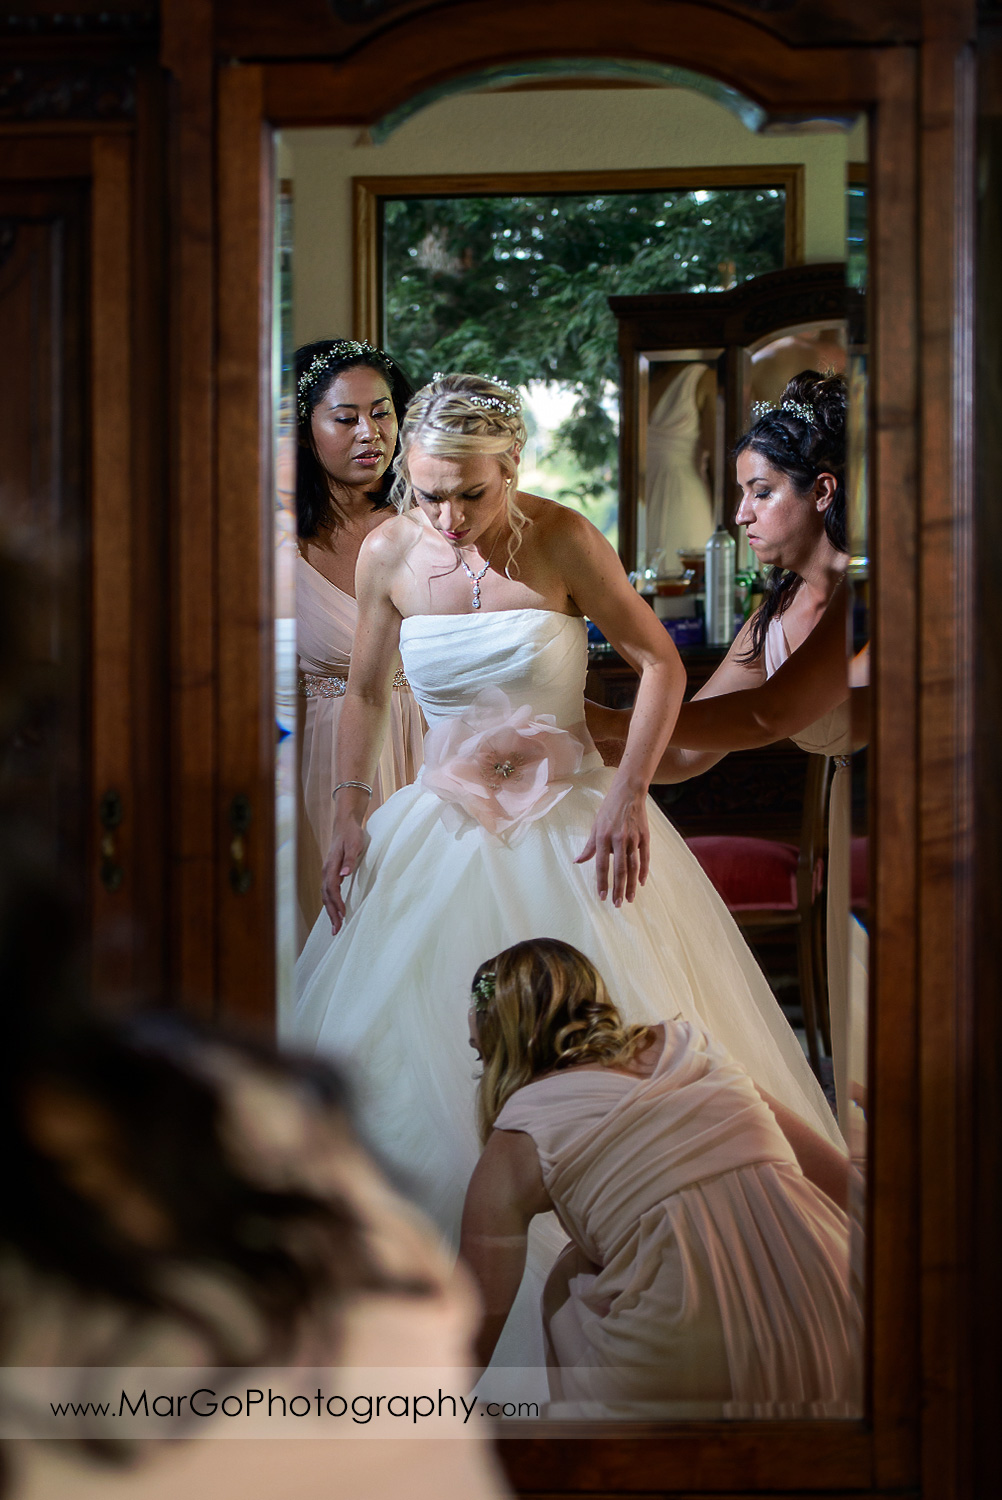 mirror shot of bride getting ready with bridesmaids